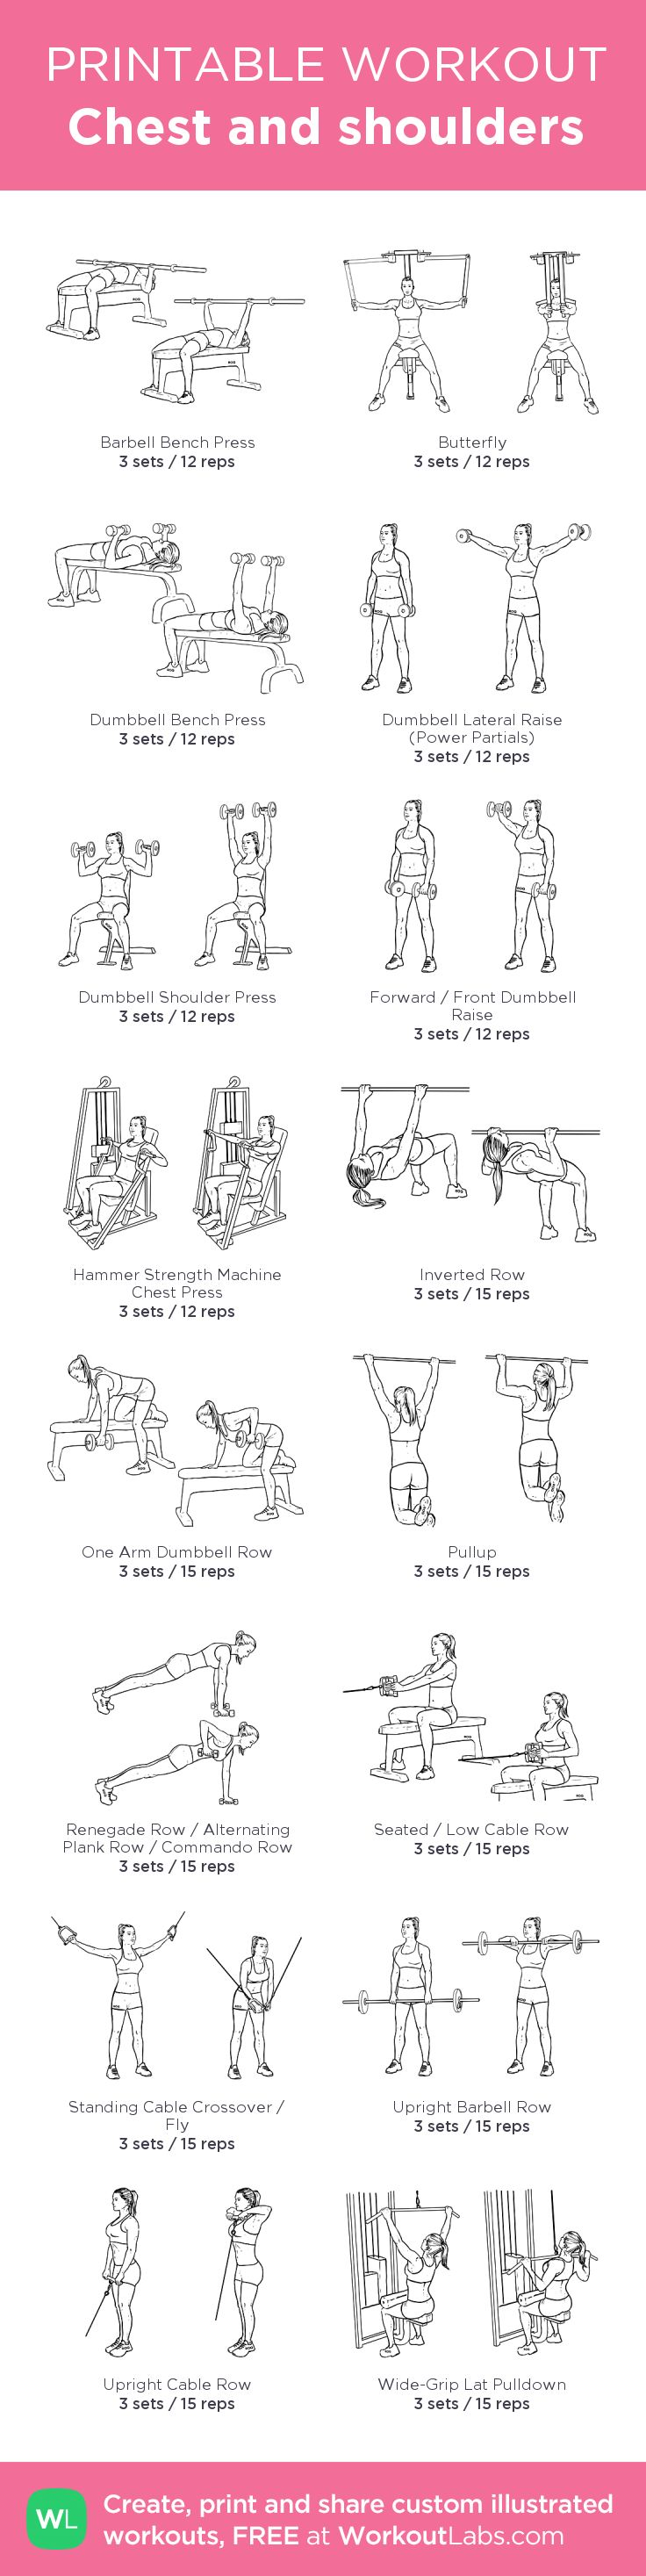 Chest and shoulders: my custom printable workout by @WorkoutLabs #workoutlabs #customworkout